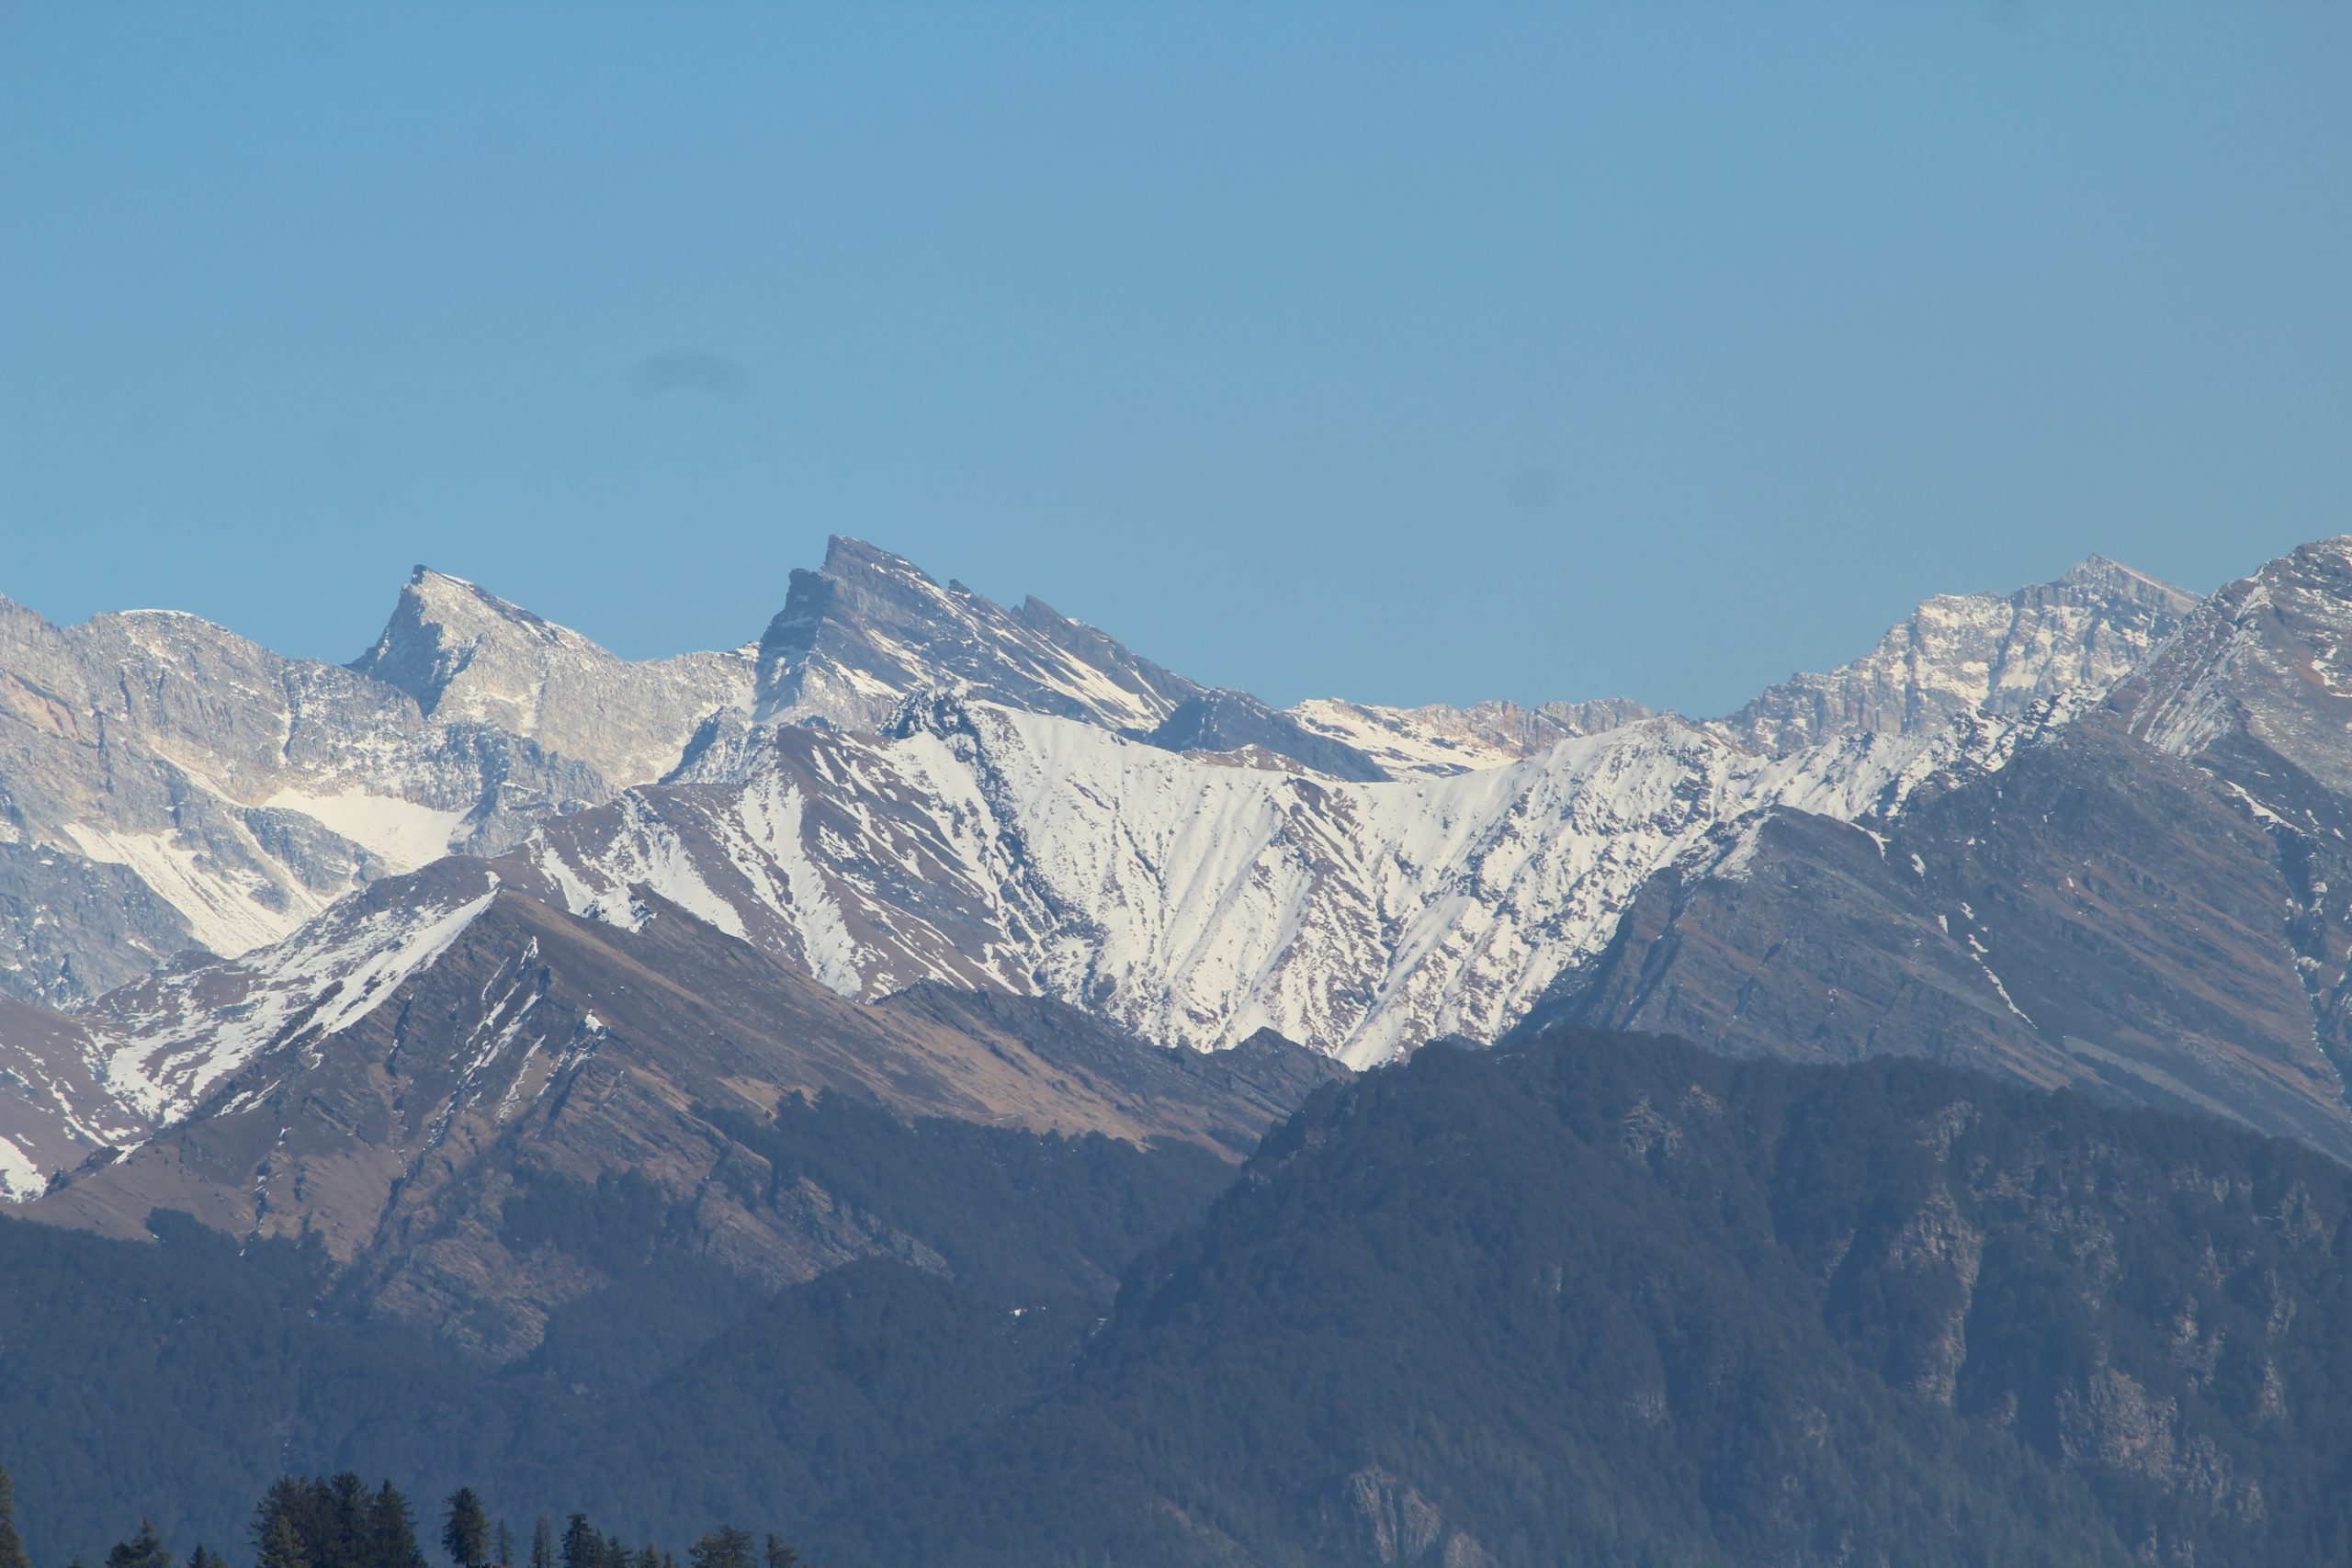 Mountain peaks and glaciers